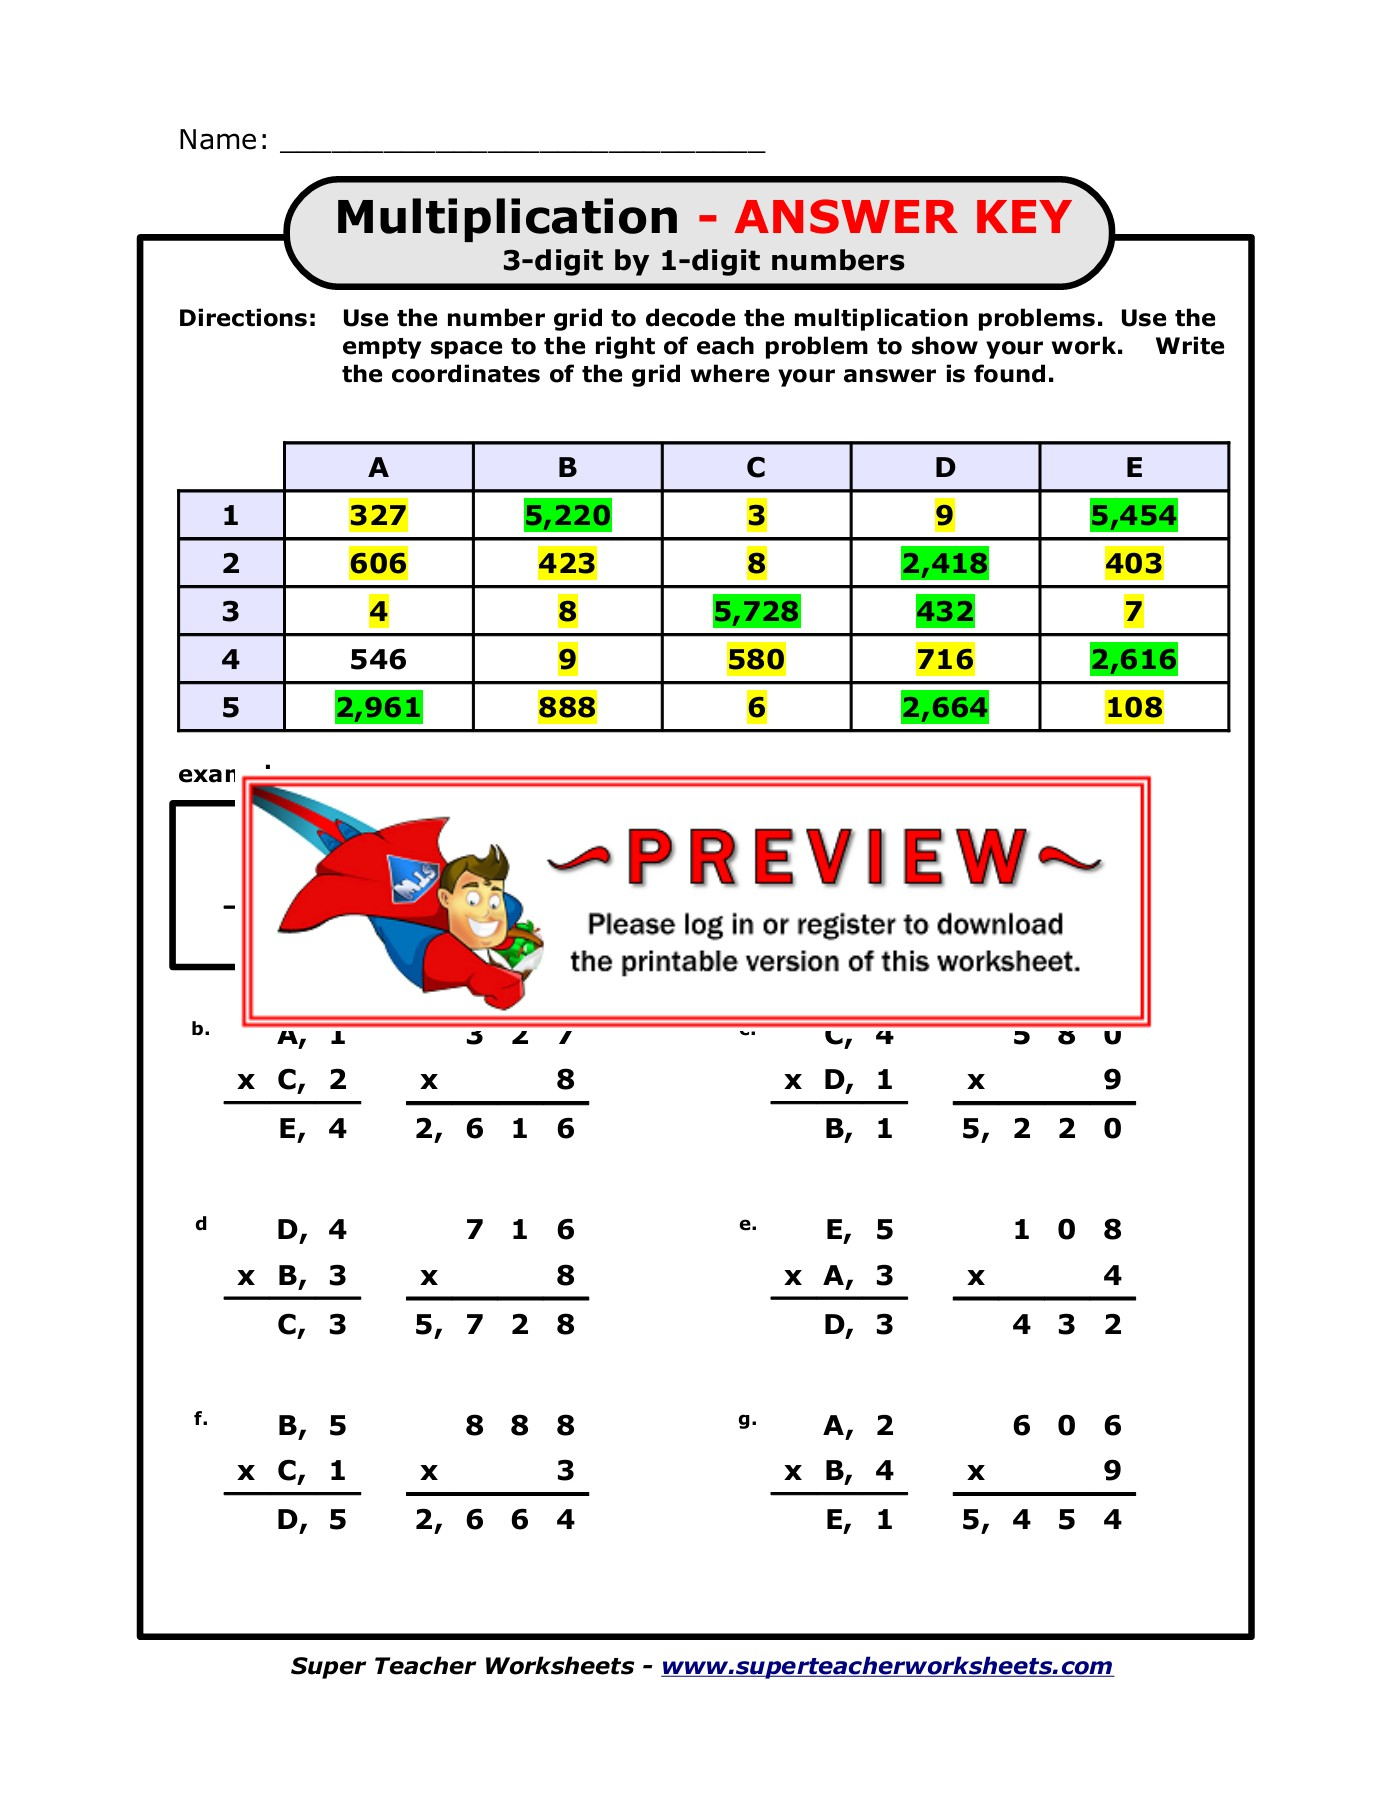 Super Teacher Worksheets Math Puzzle Picture